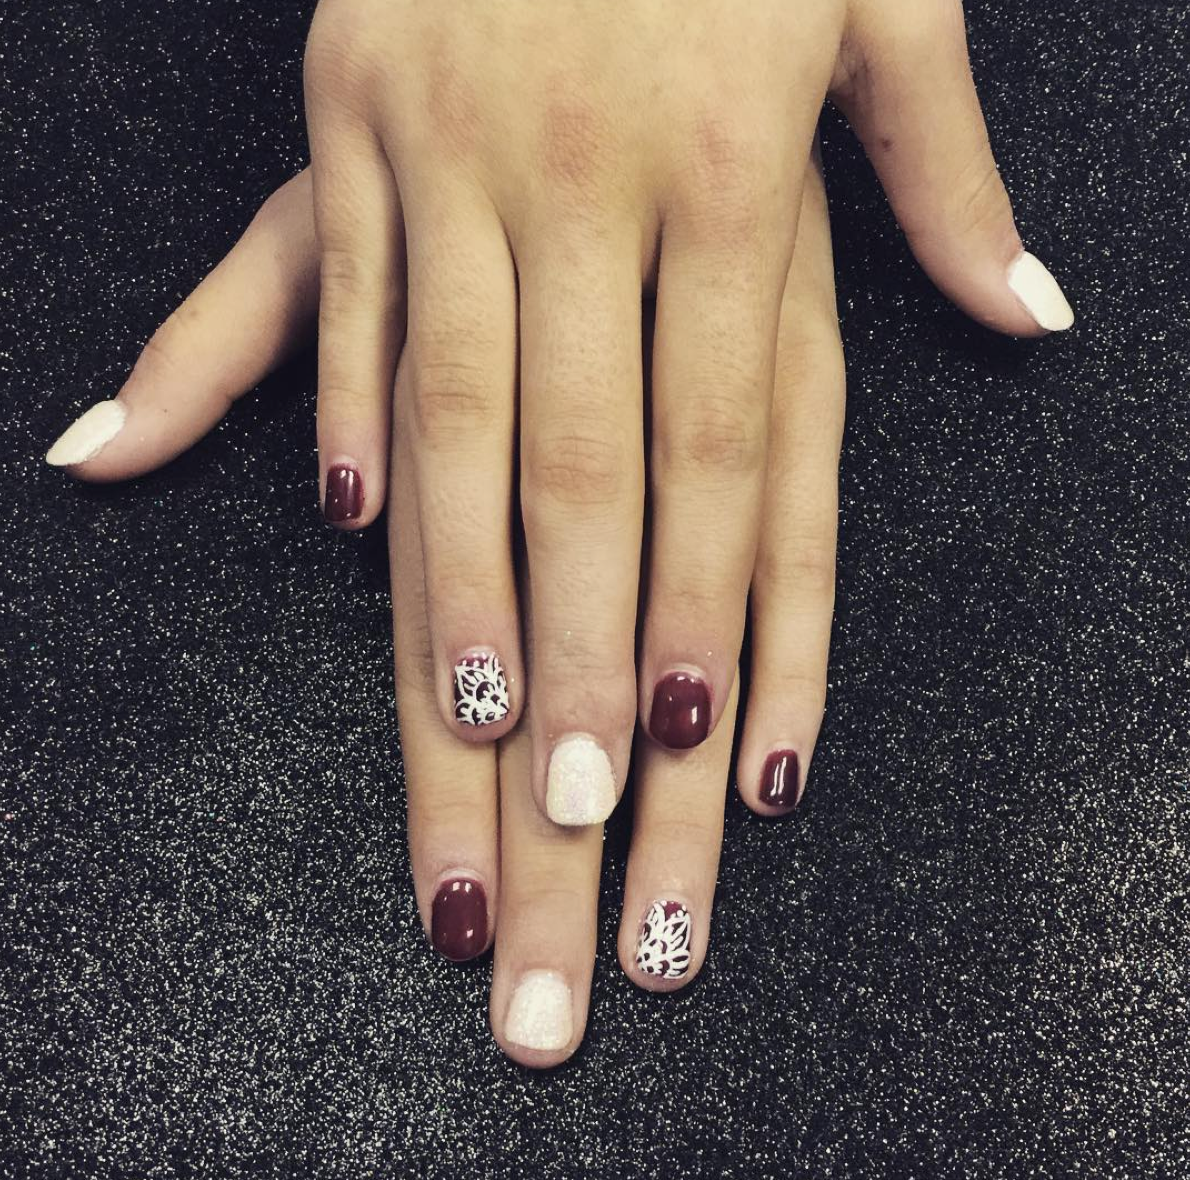 Gel manicure at Oliver Finley Academy of Cosmetology